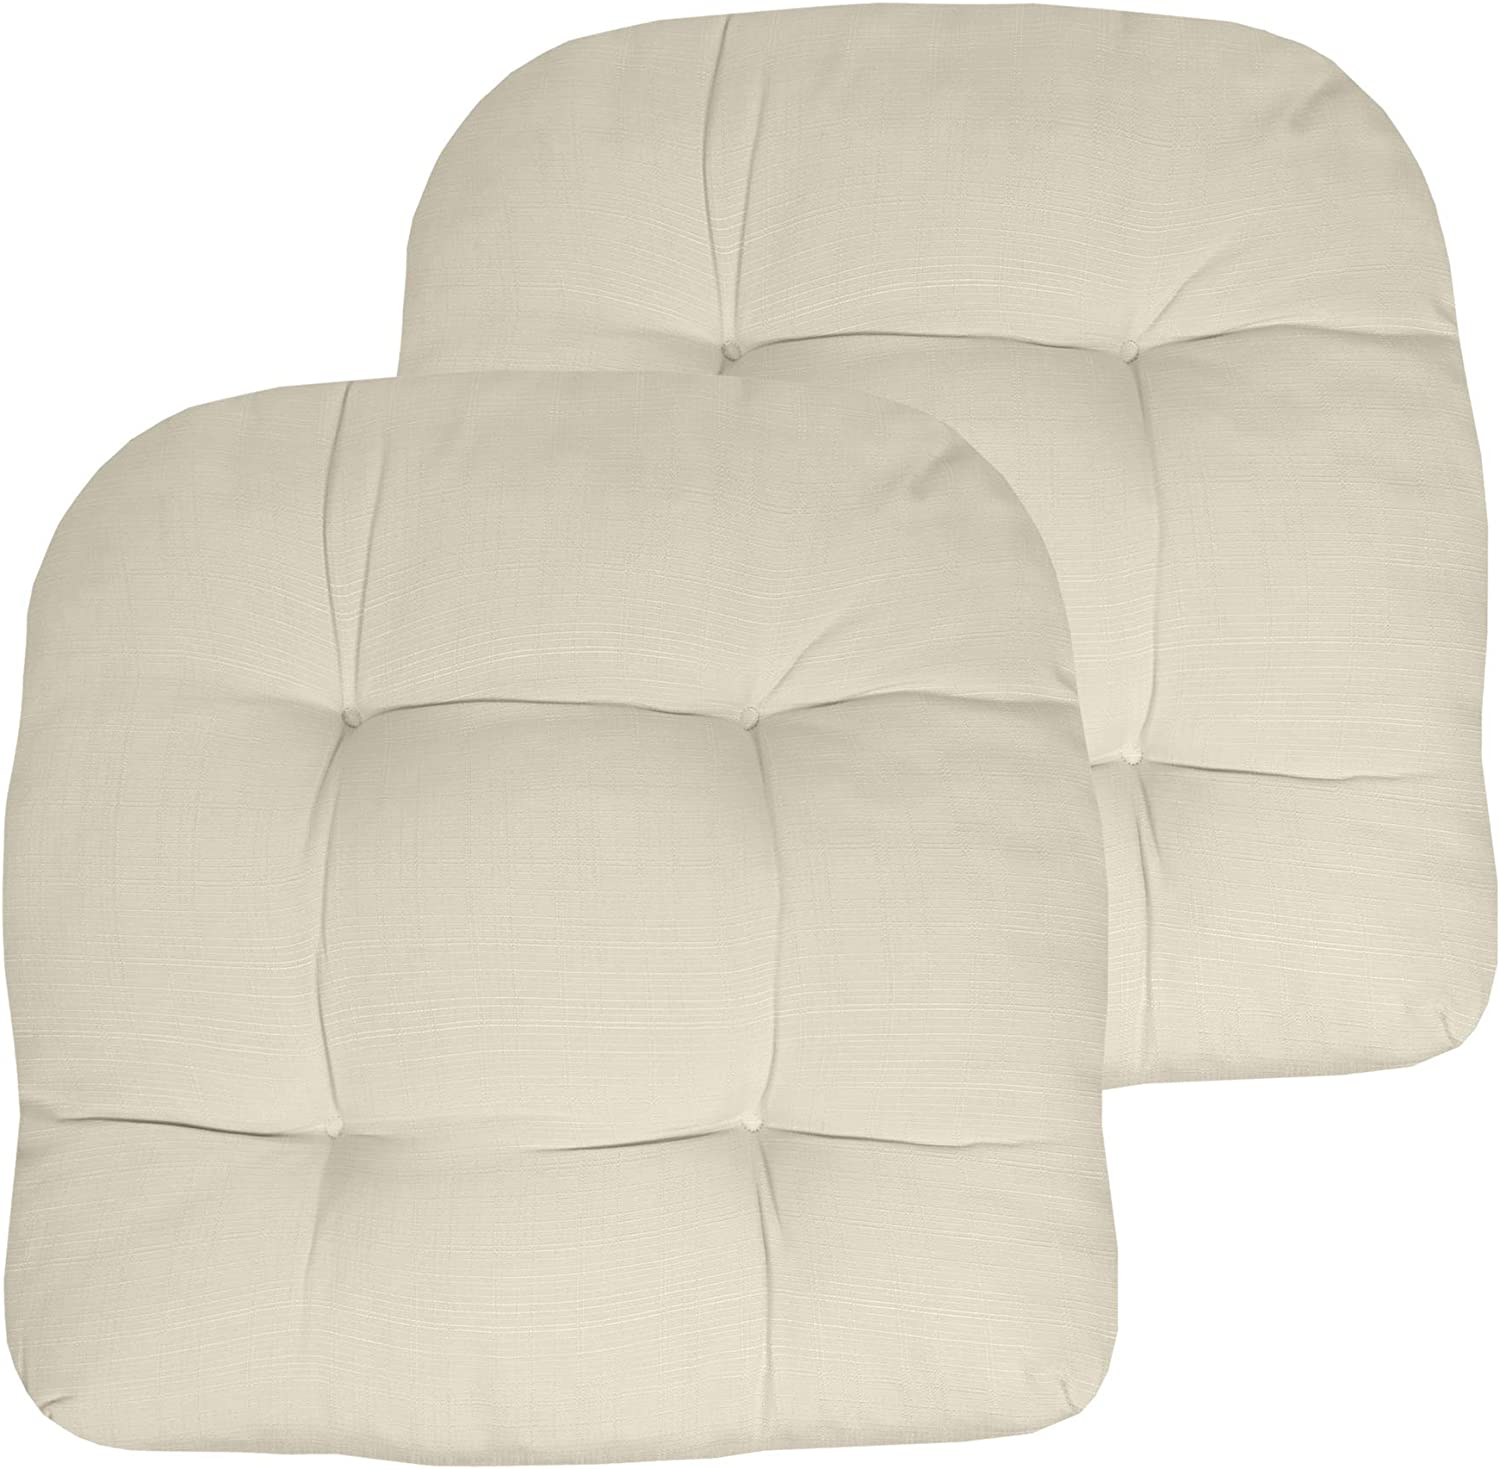 """Sweet Home Collection Patio Cushions Outdoor Chair Pads Premium Comfortable Thick Fiber Fill Tufted 19"""" x 19"""" Seat Cover, 2 Pack, Cream"""